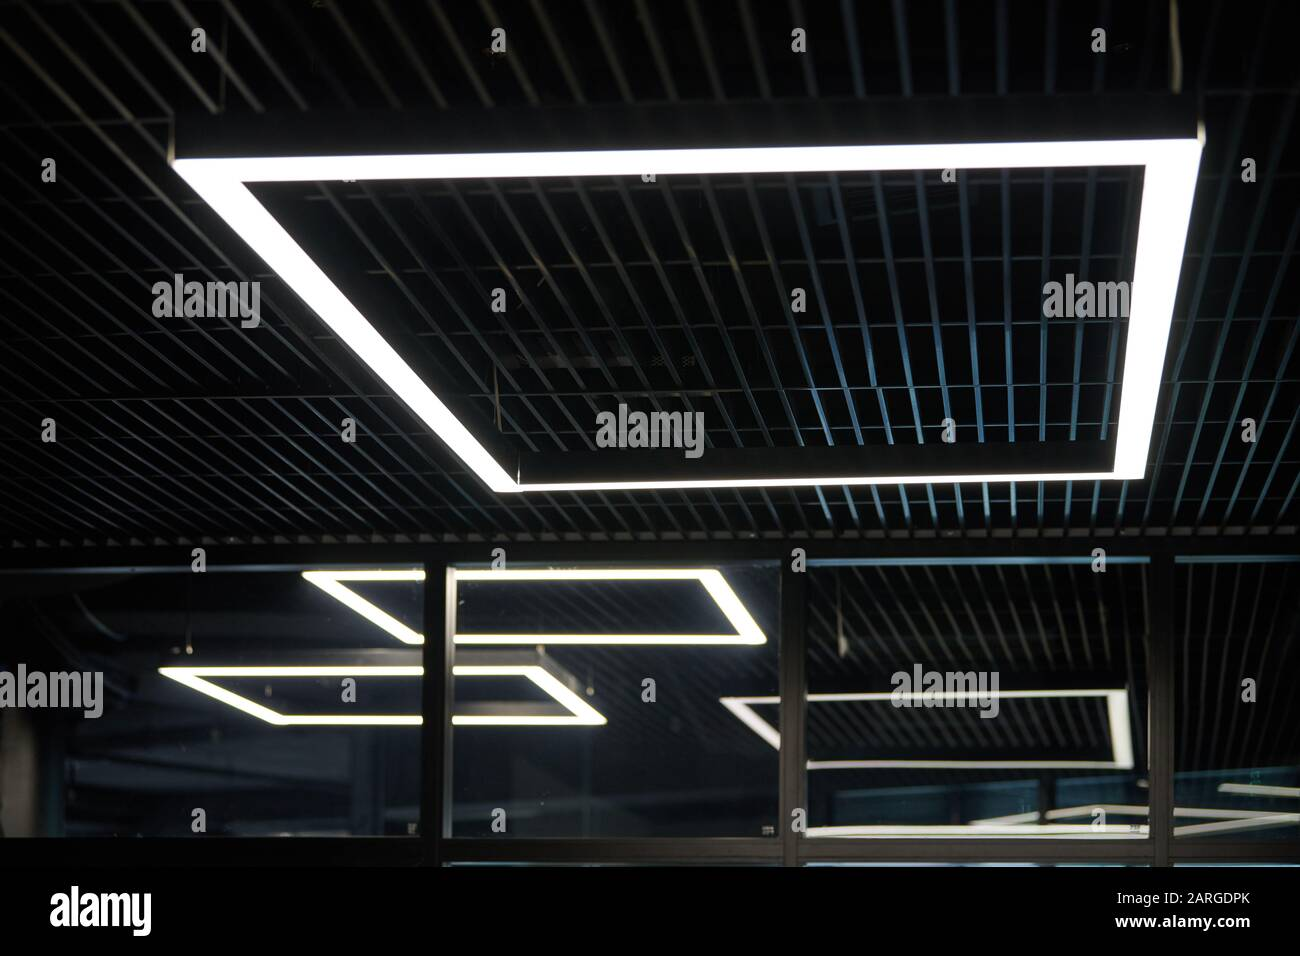 Modern Office Lighting Thin Lamps In Office Dark Ceiling Led White Cold Light Over Workplaces Stock Photo Alamy